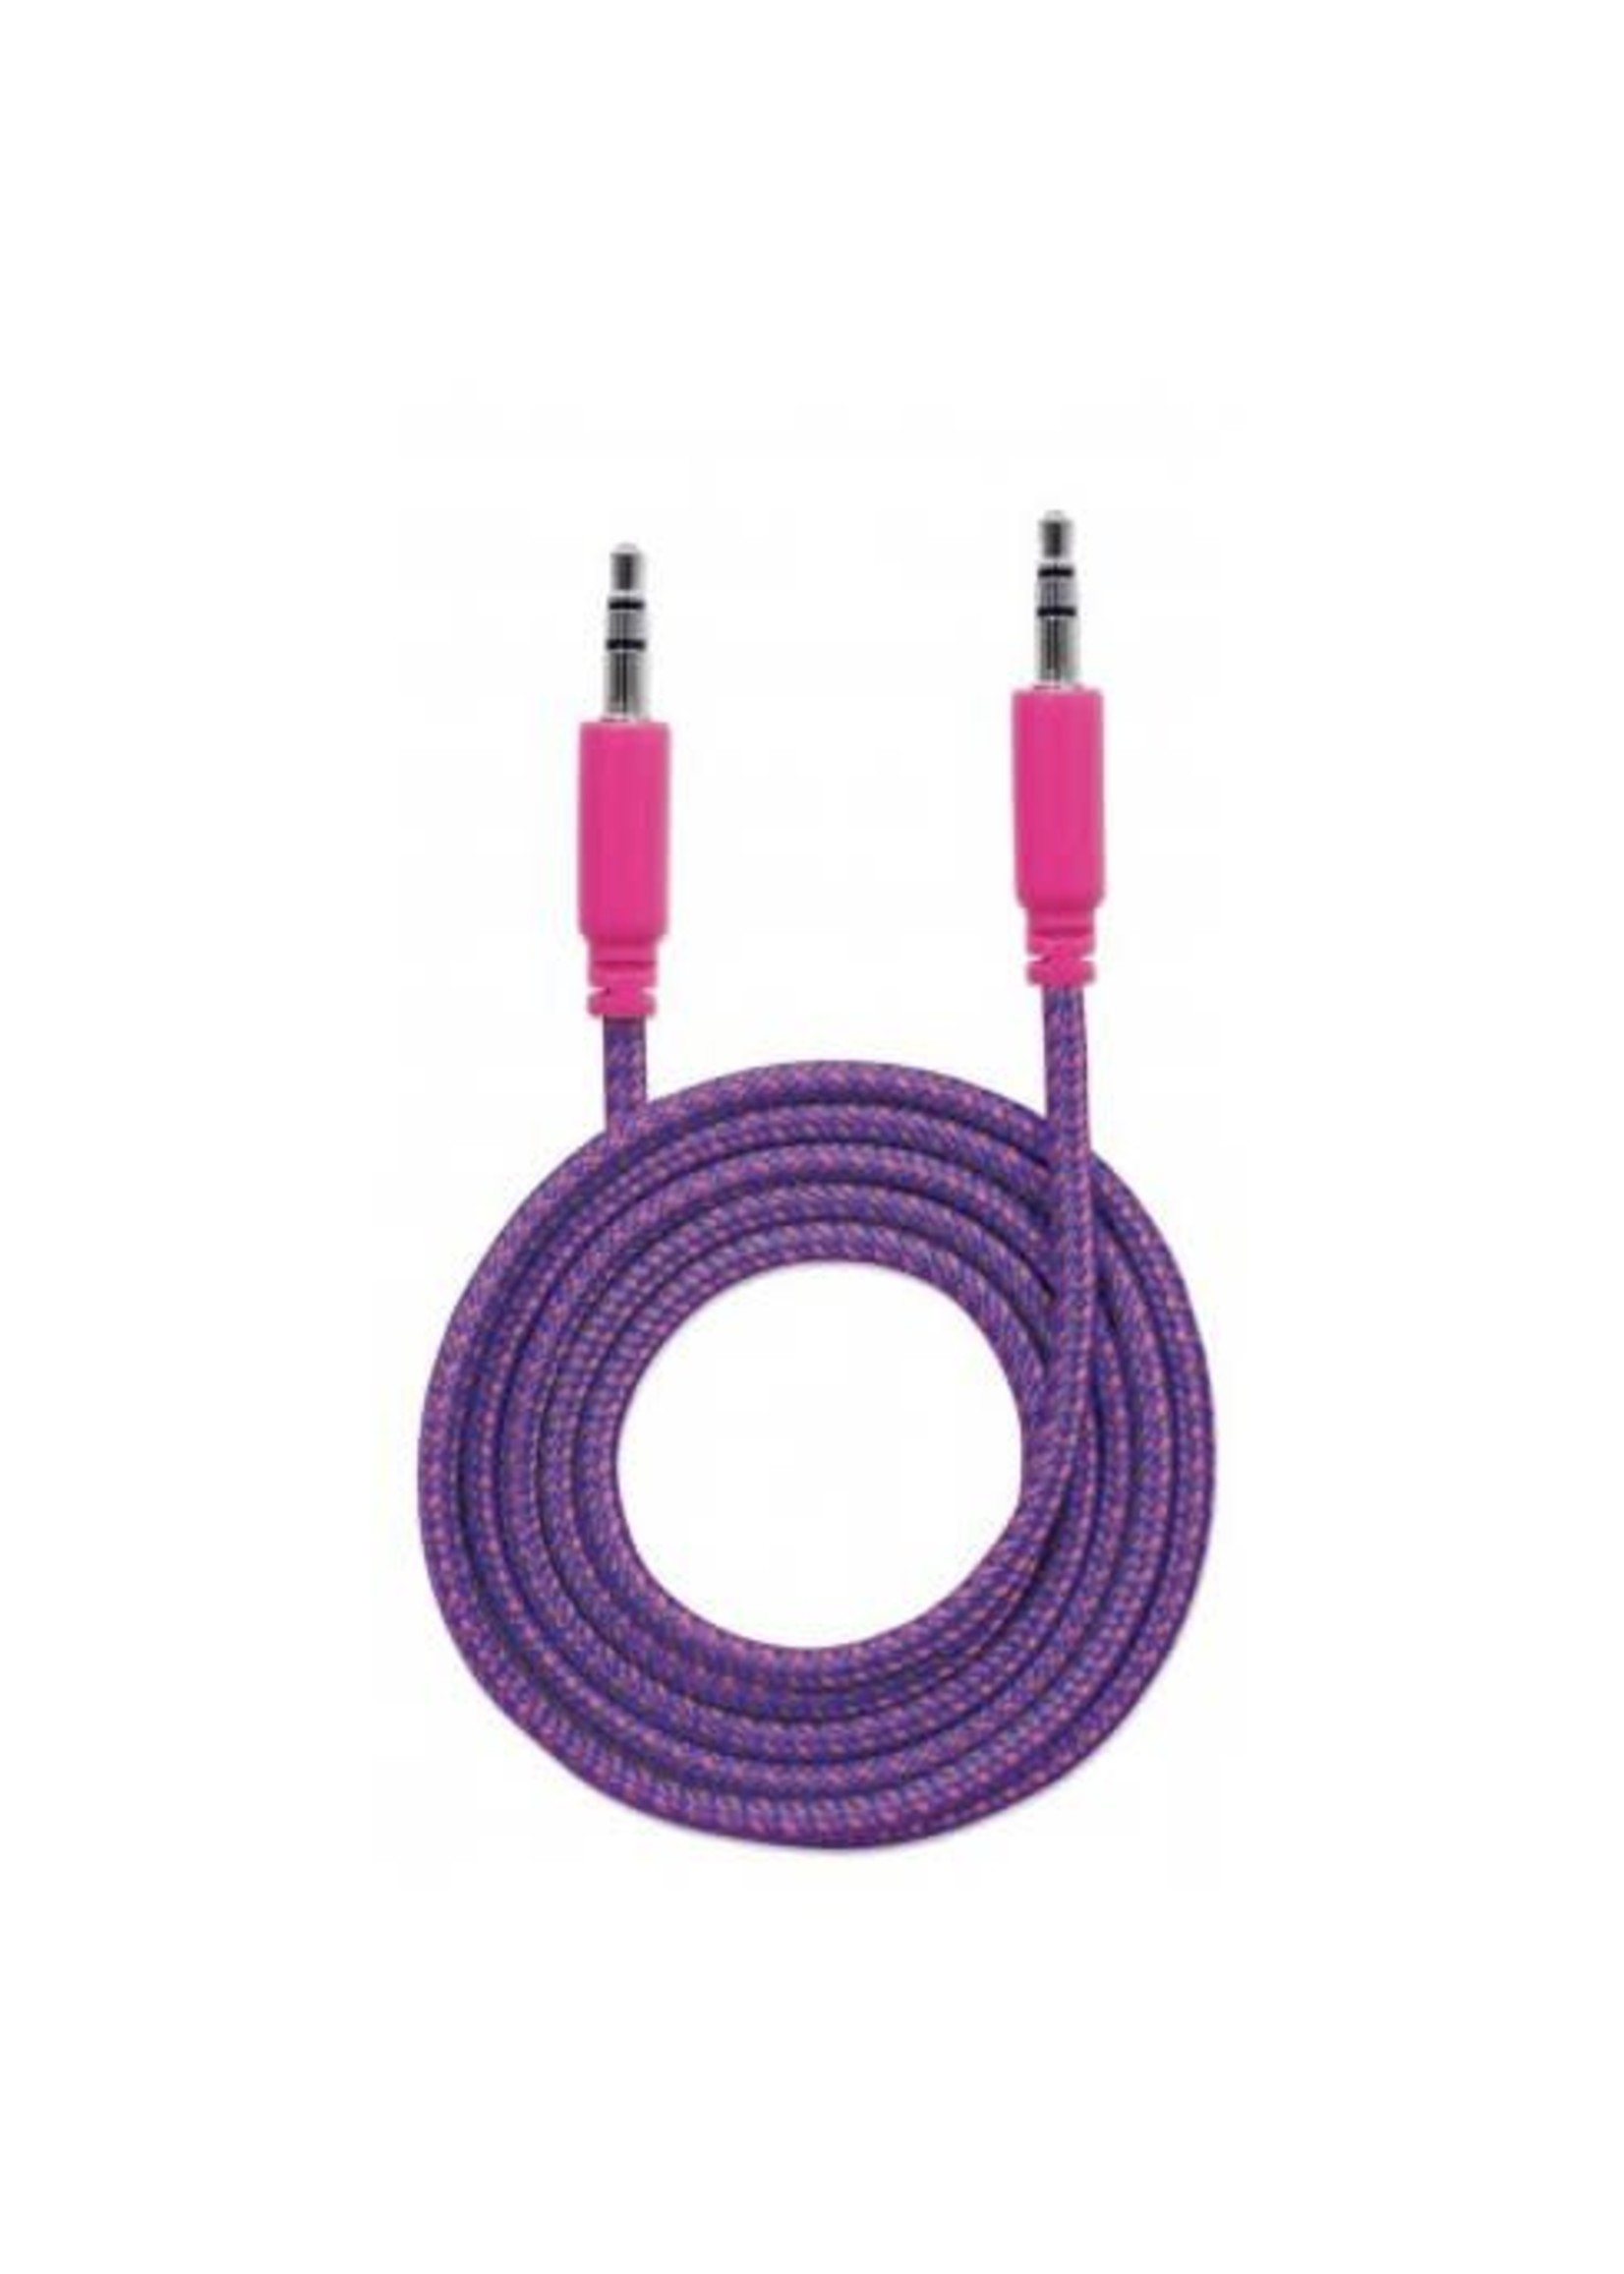 Cable-1m Auxilary AUX 3.5mm w/ Mic support (4 rings)